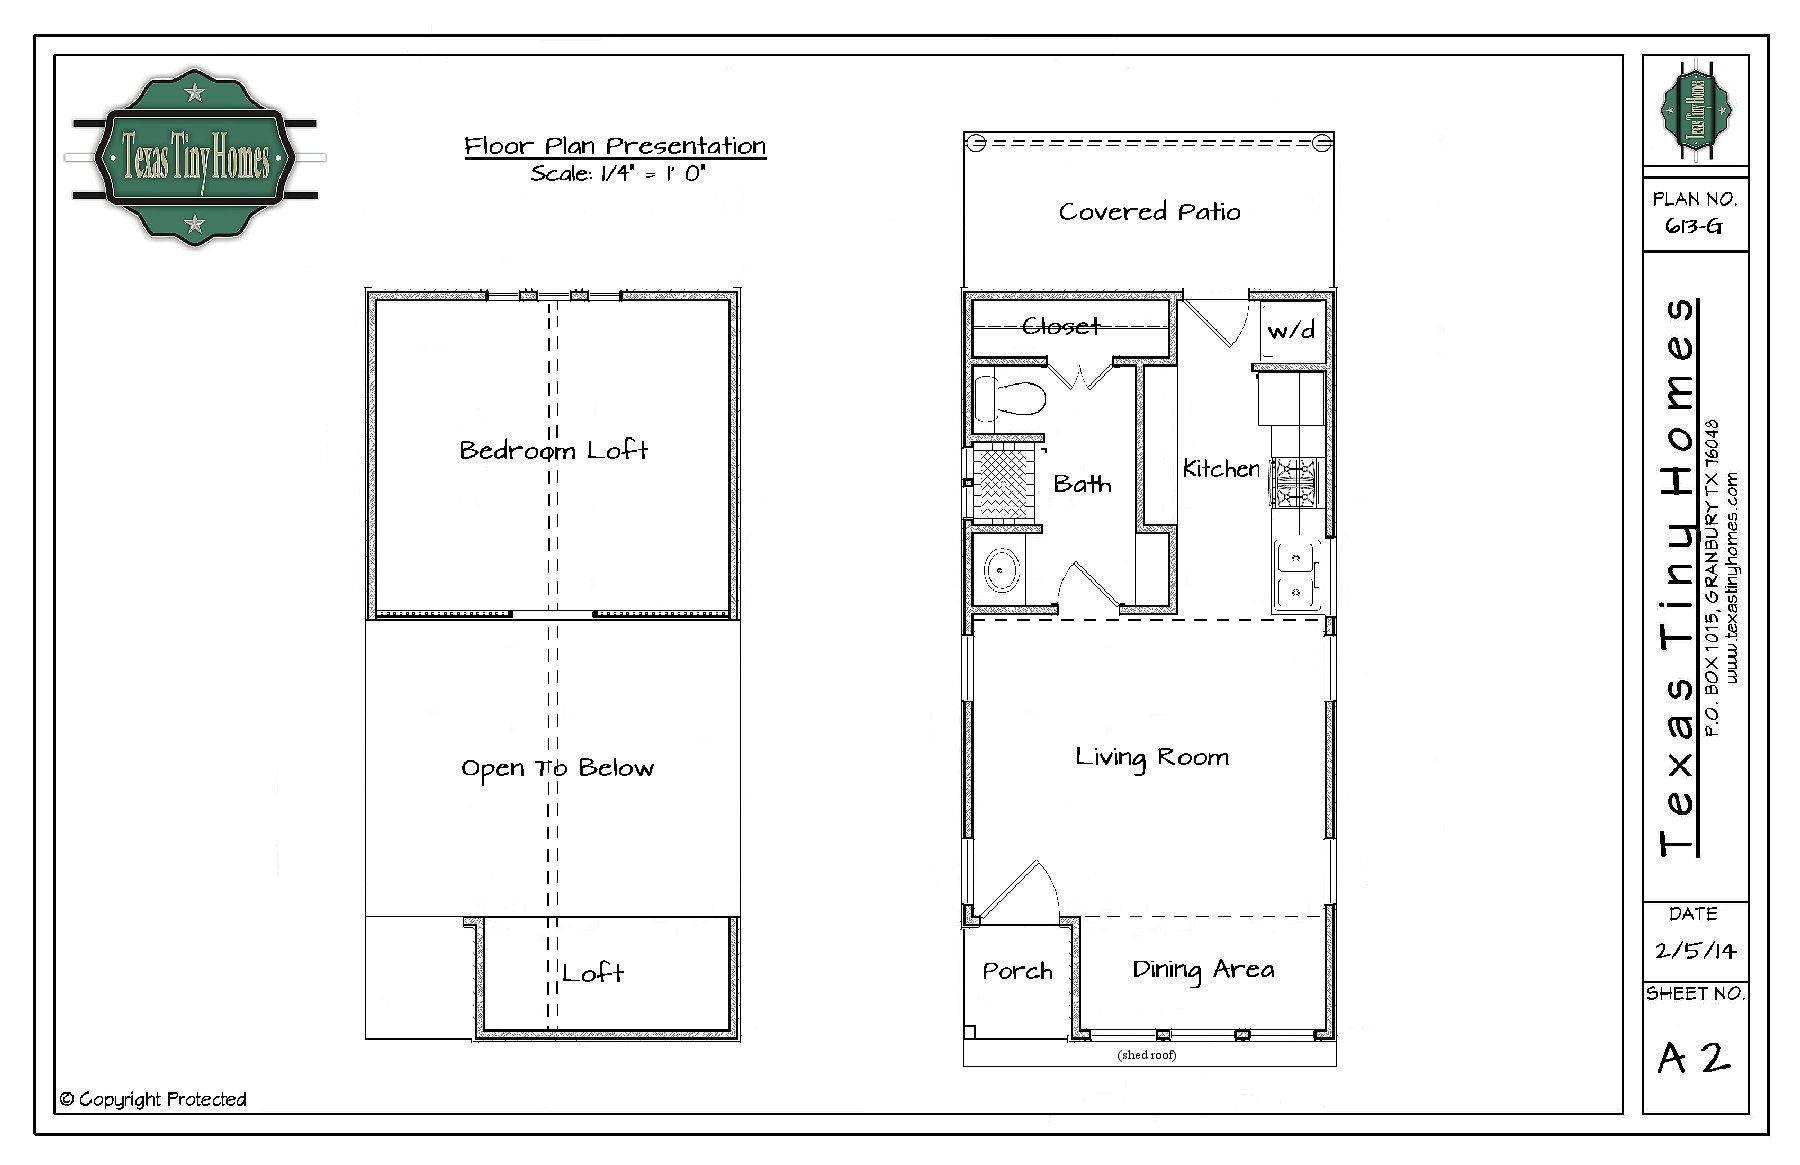 small house small home small house plans small homes small home plans